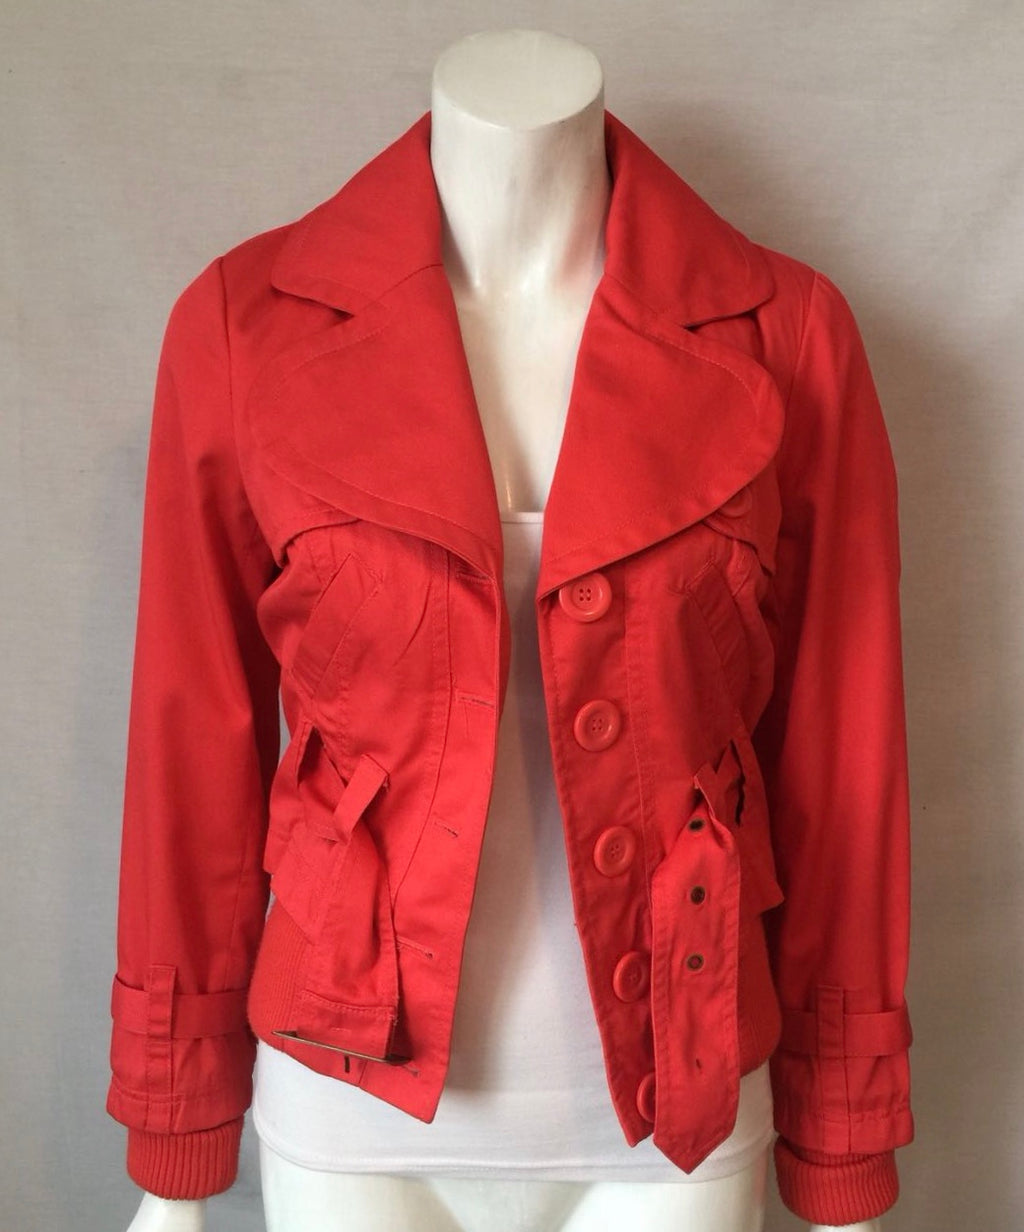 Brand New Vera Moda Red Balsa Jolly Joyce Jacket Size S